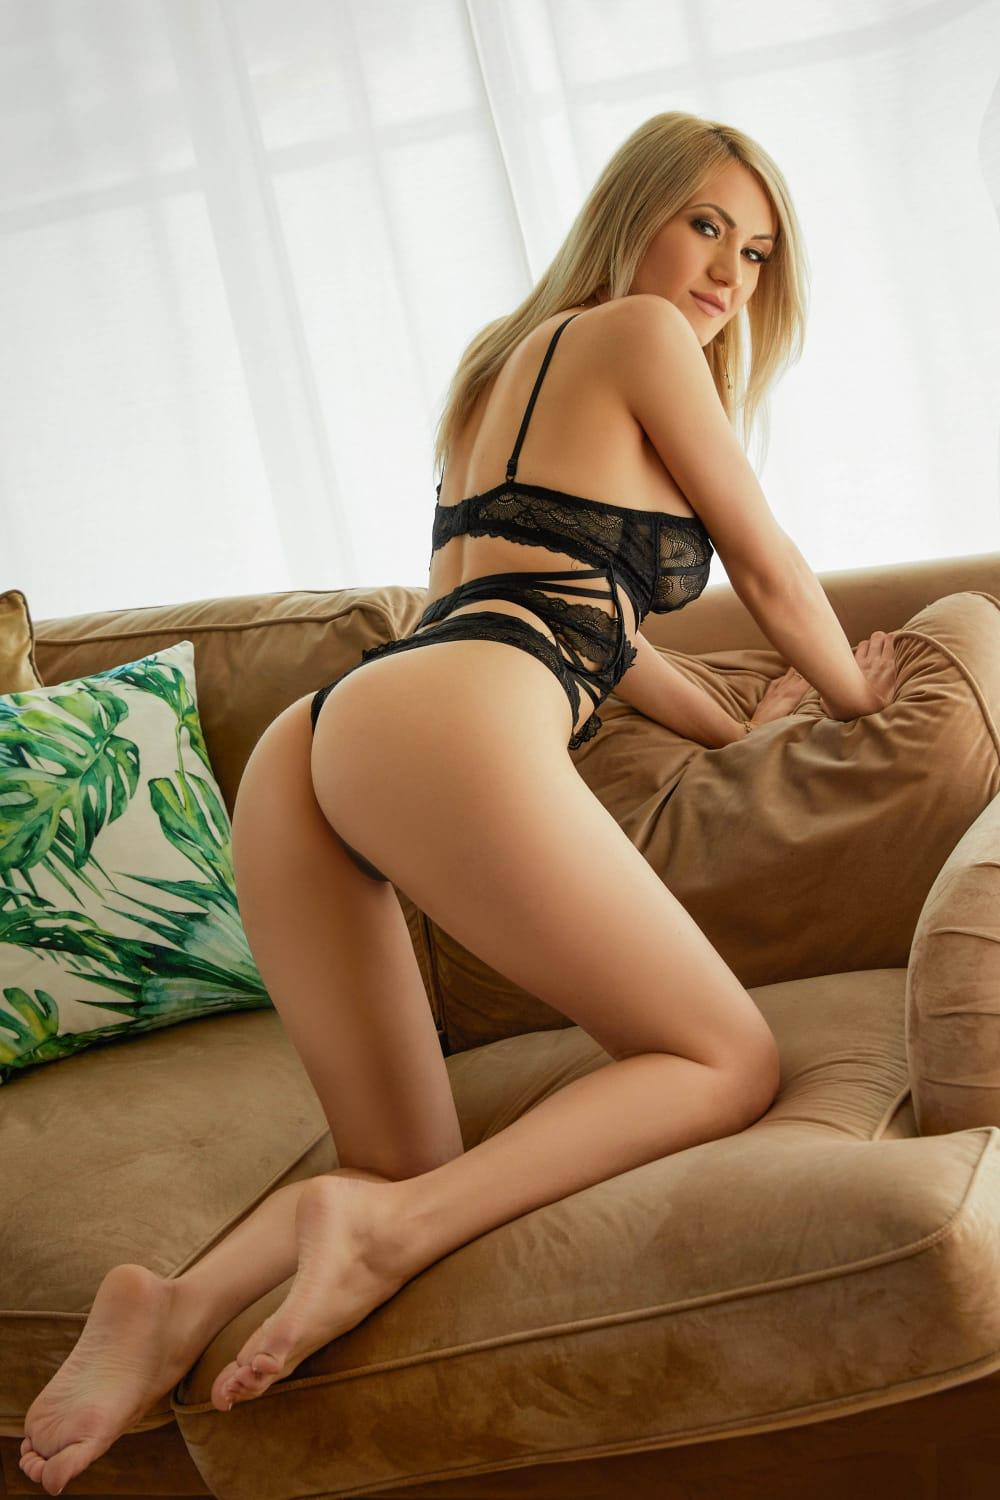 Isabella from 24hr London Escorts